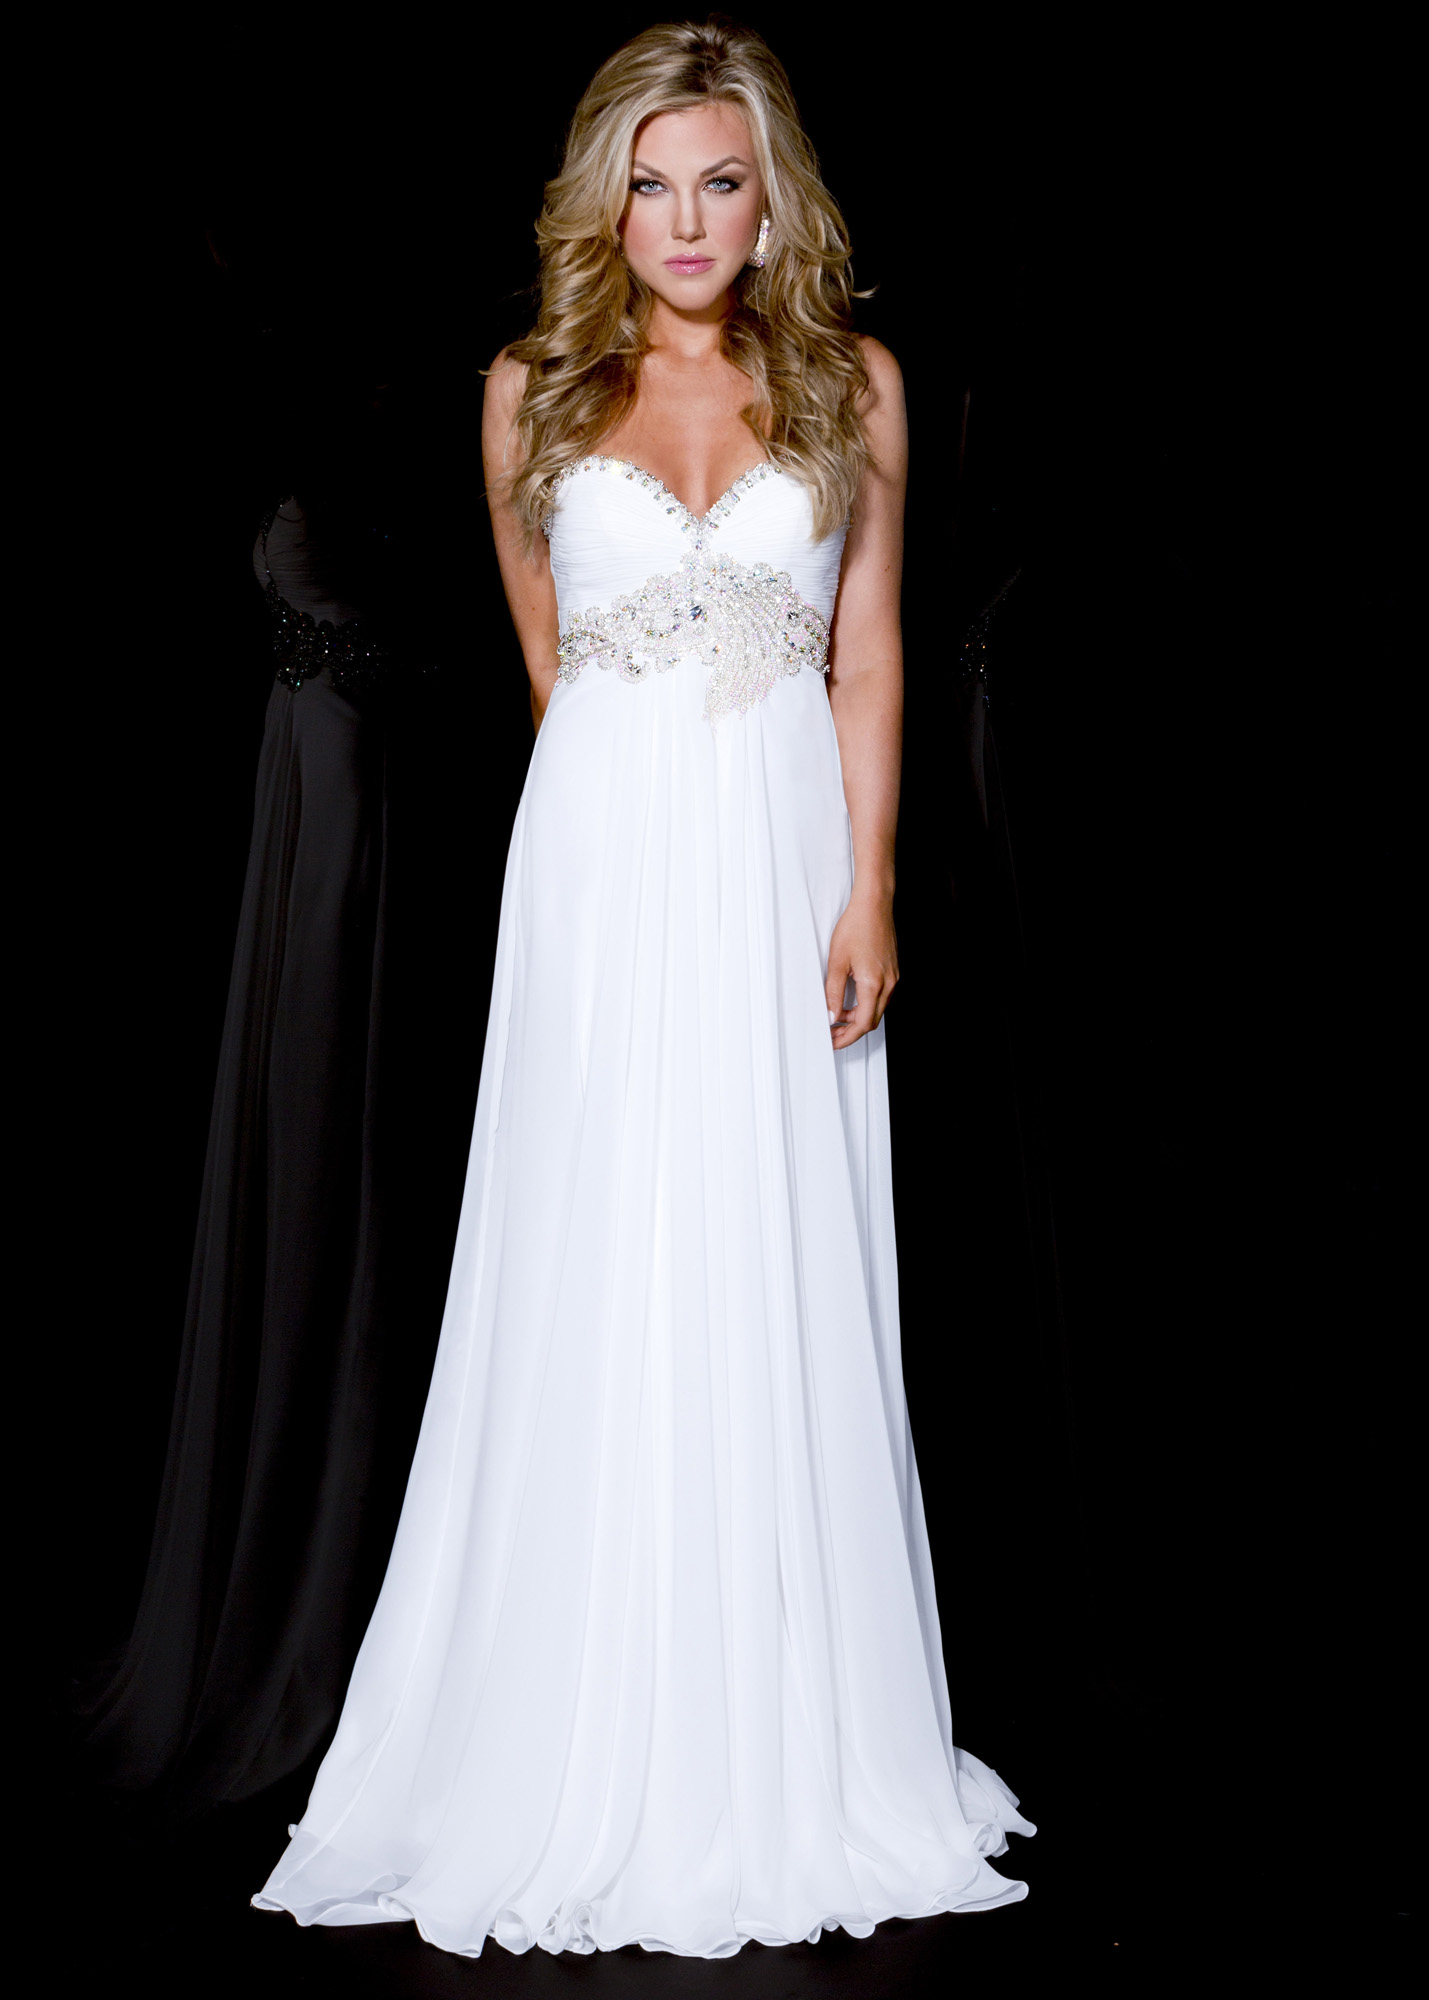 Couture 4831 - White Strapless Chiffon Dress - RissyRoos.com ...